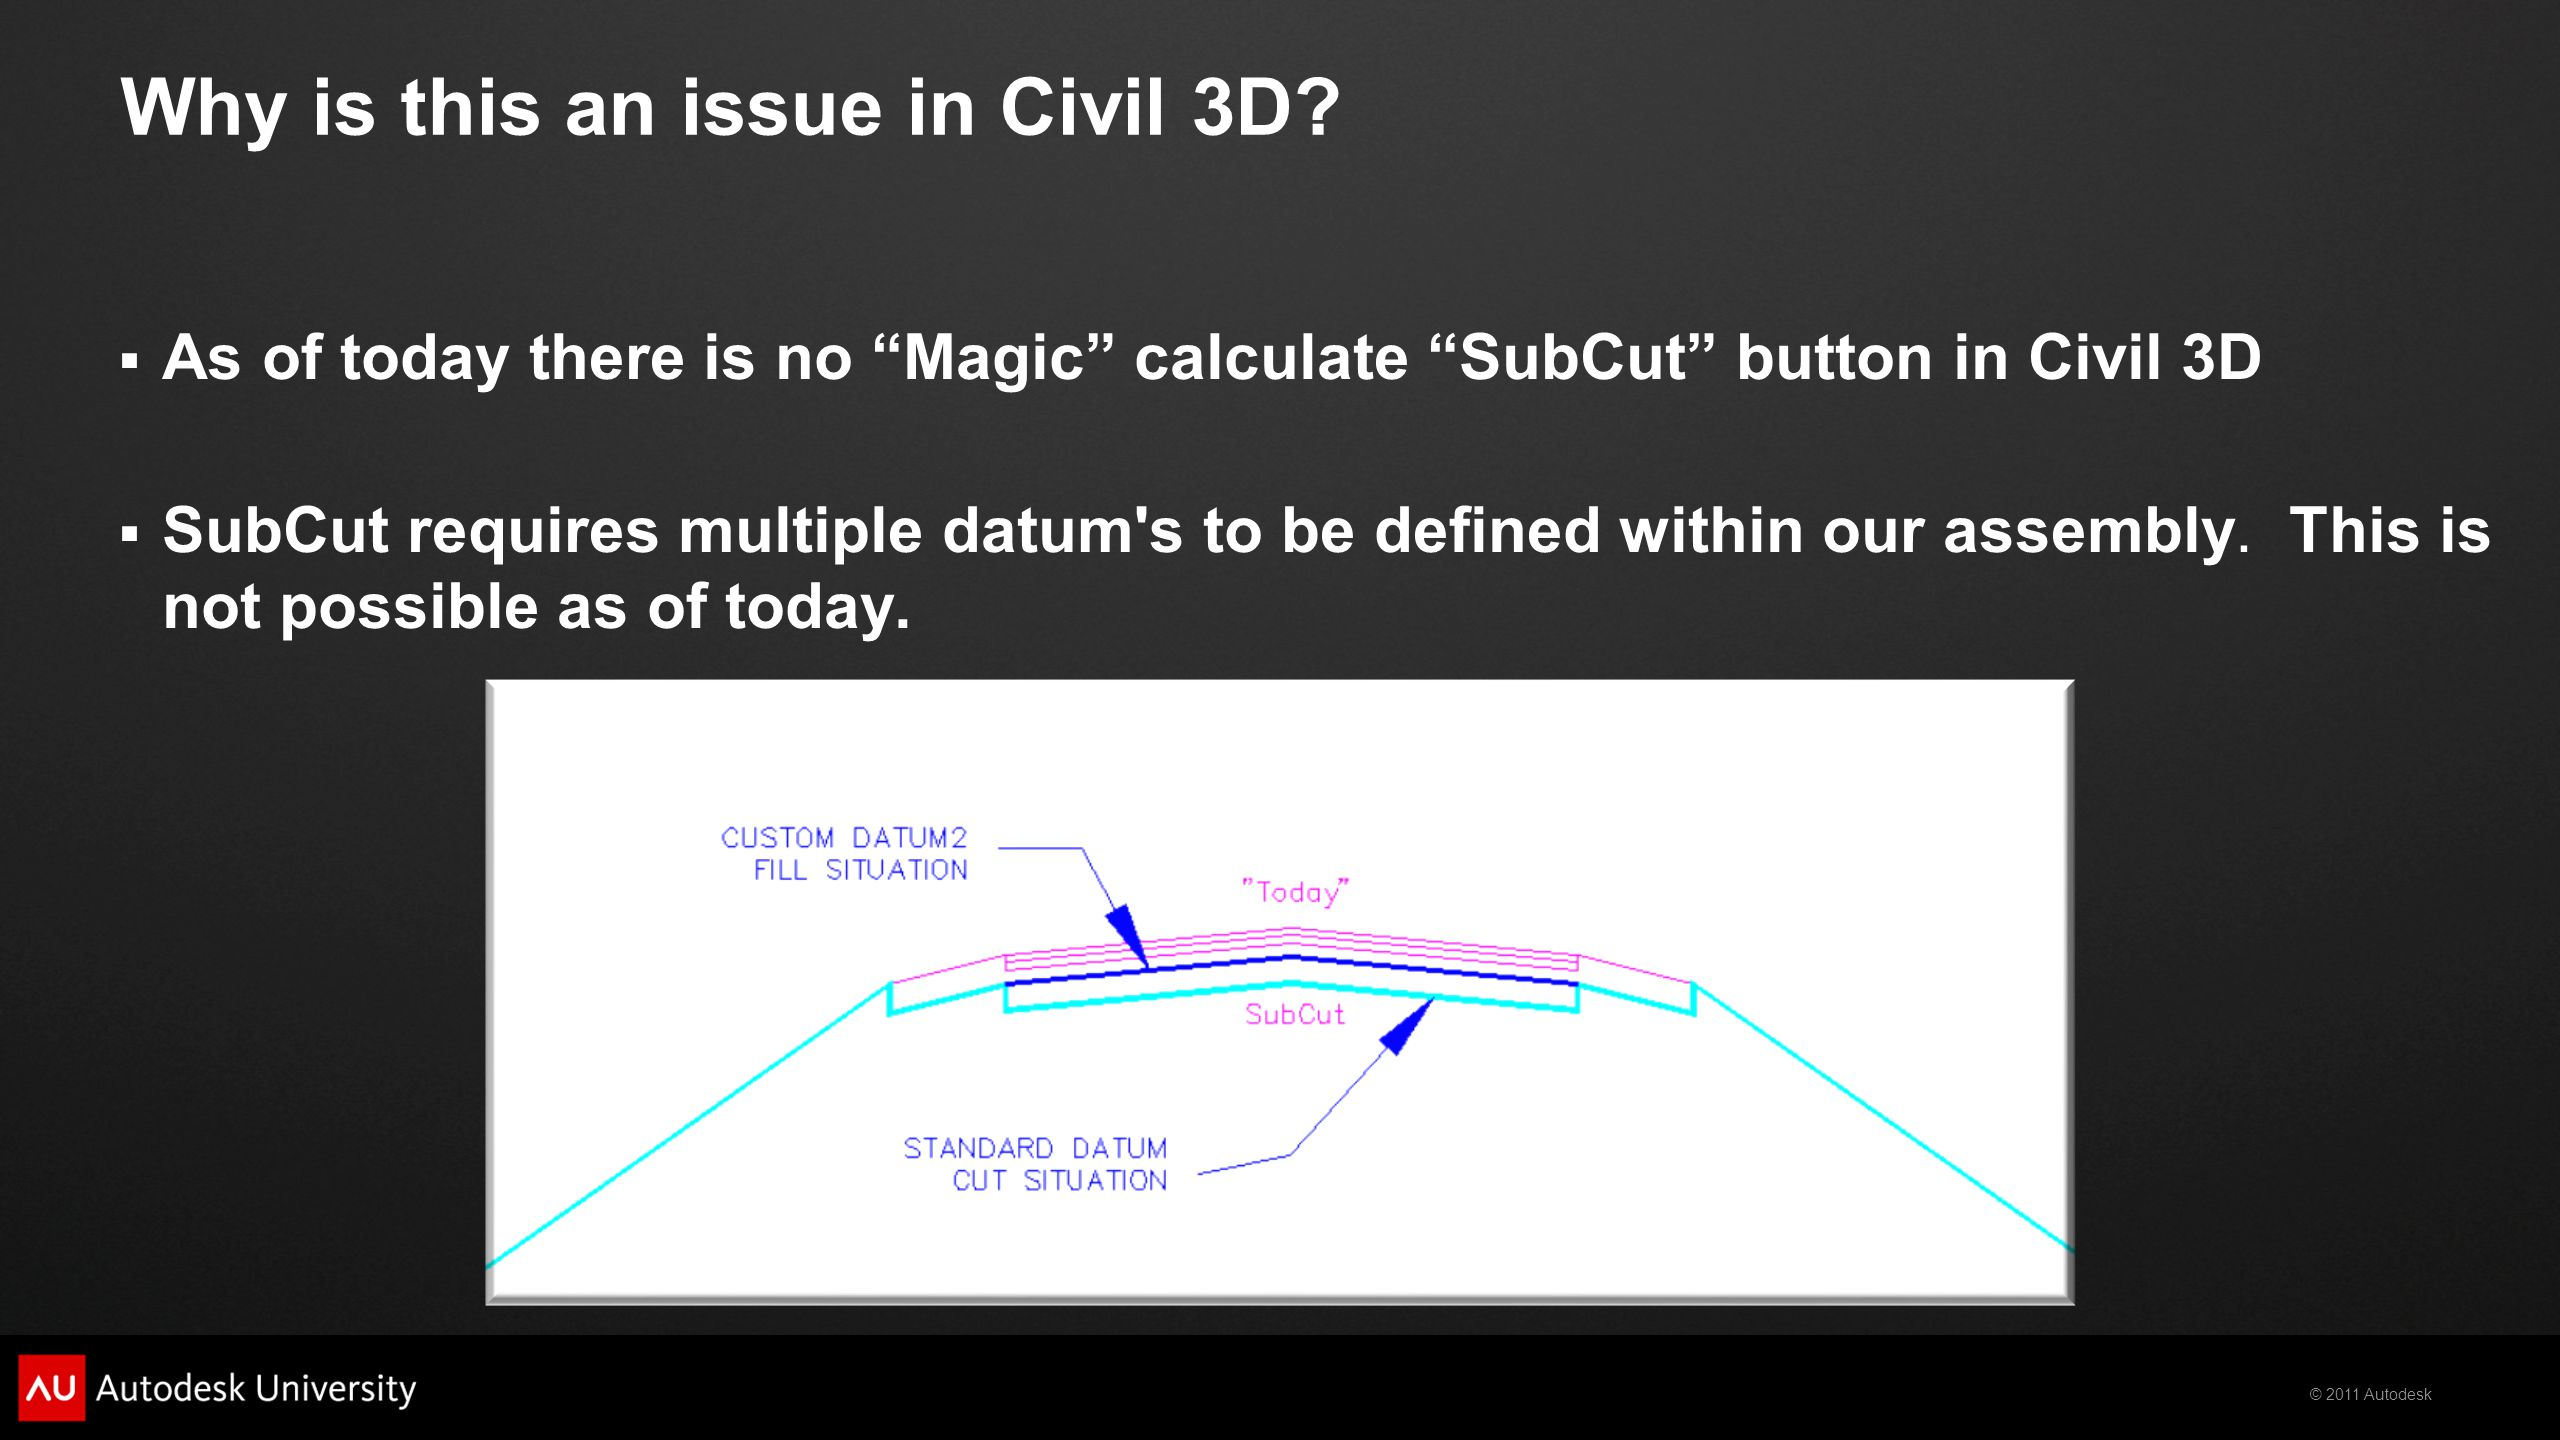 Why is this an issue in Civil 3D